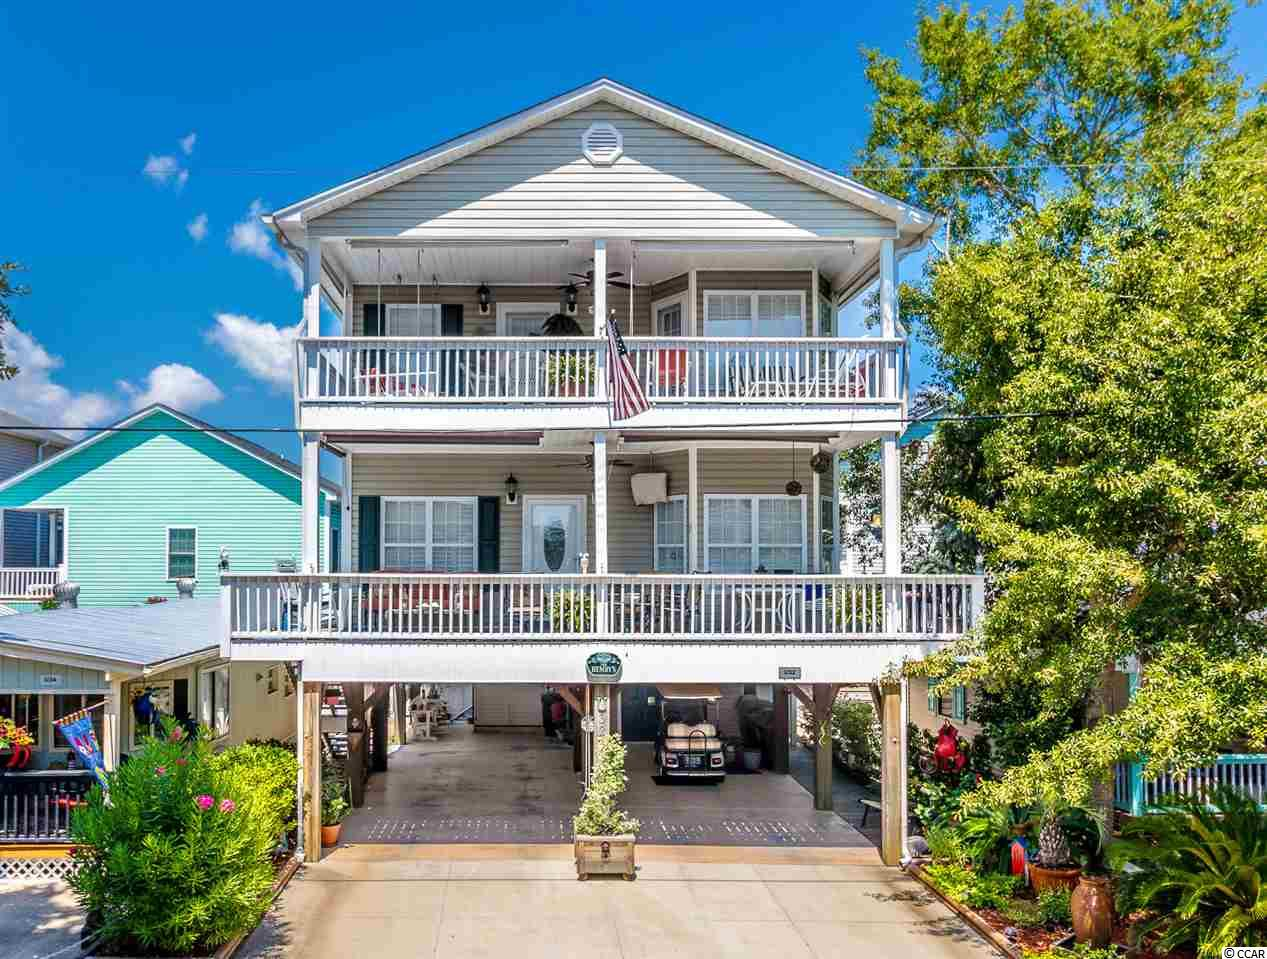 6001-U32 South Kings Hwy., Myrtle Beach, South Carolina